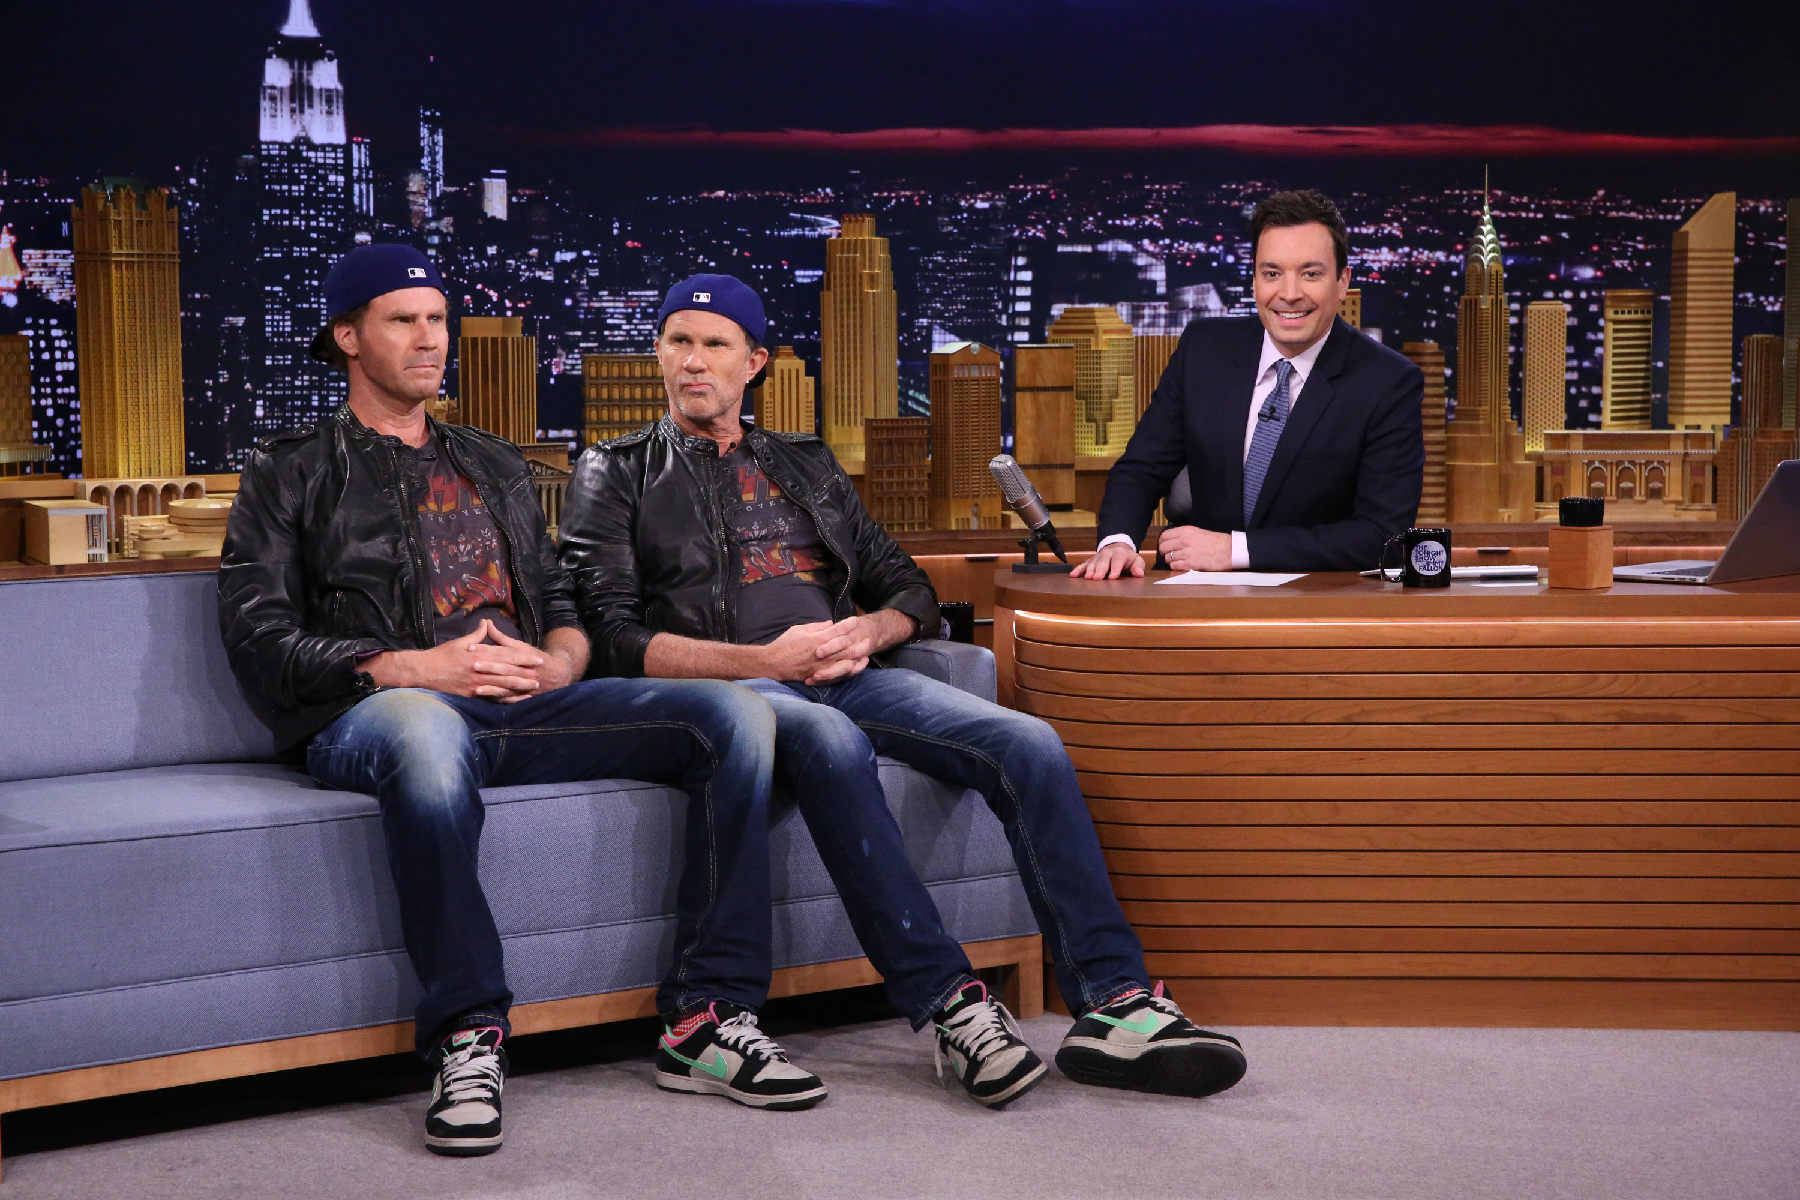 Chili Peppers Surprise Will Ferrell, Chad Smith Drum-Off on 'Fallon'